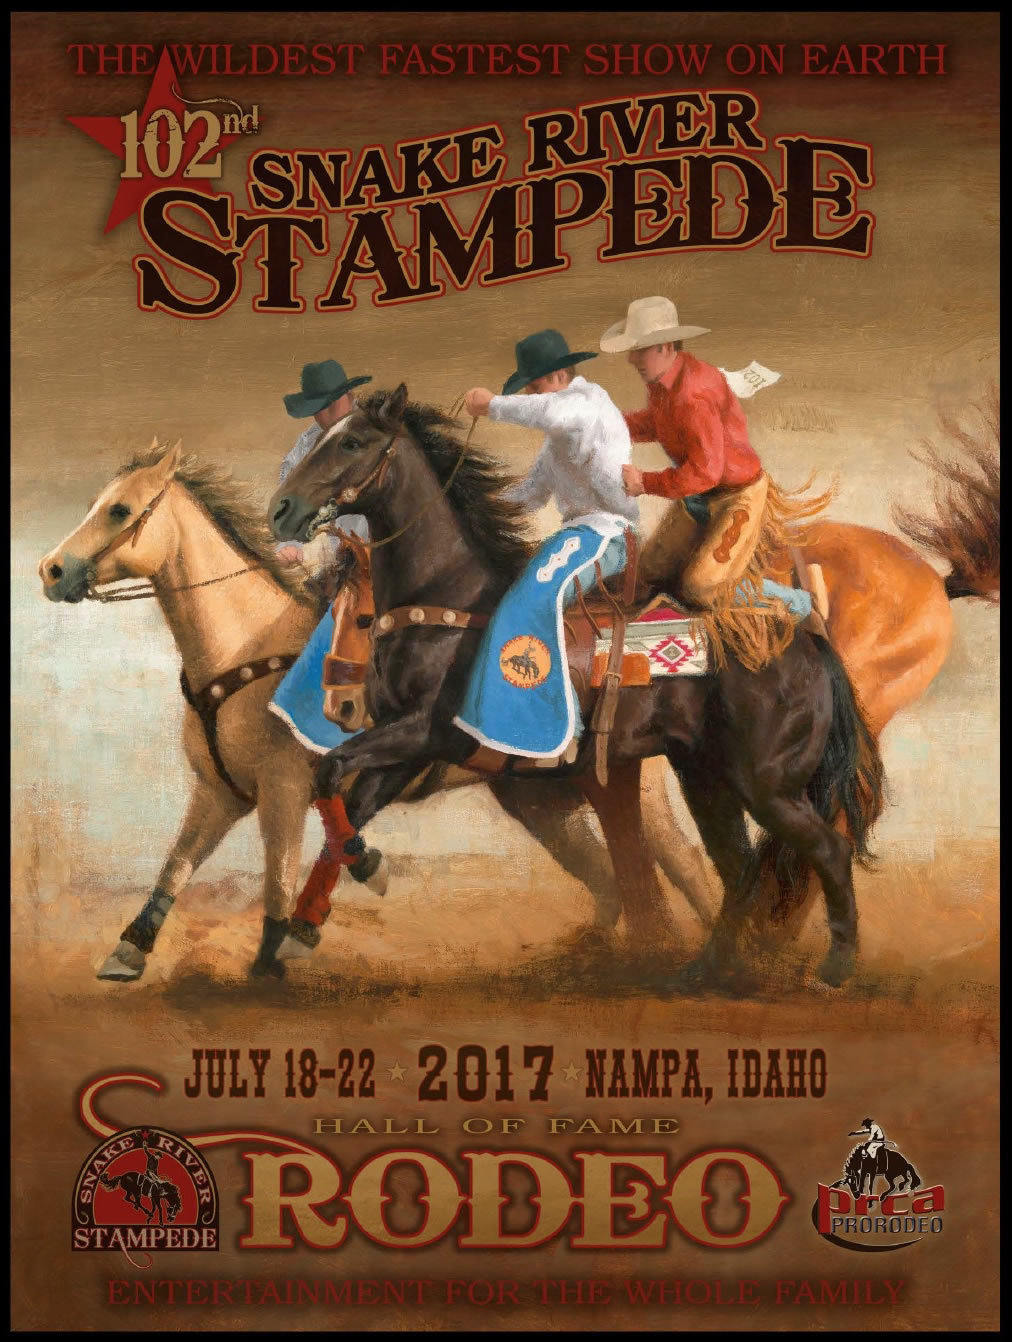 2017 OFFICIAL RODEO POSTER 00000